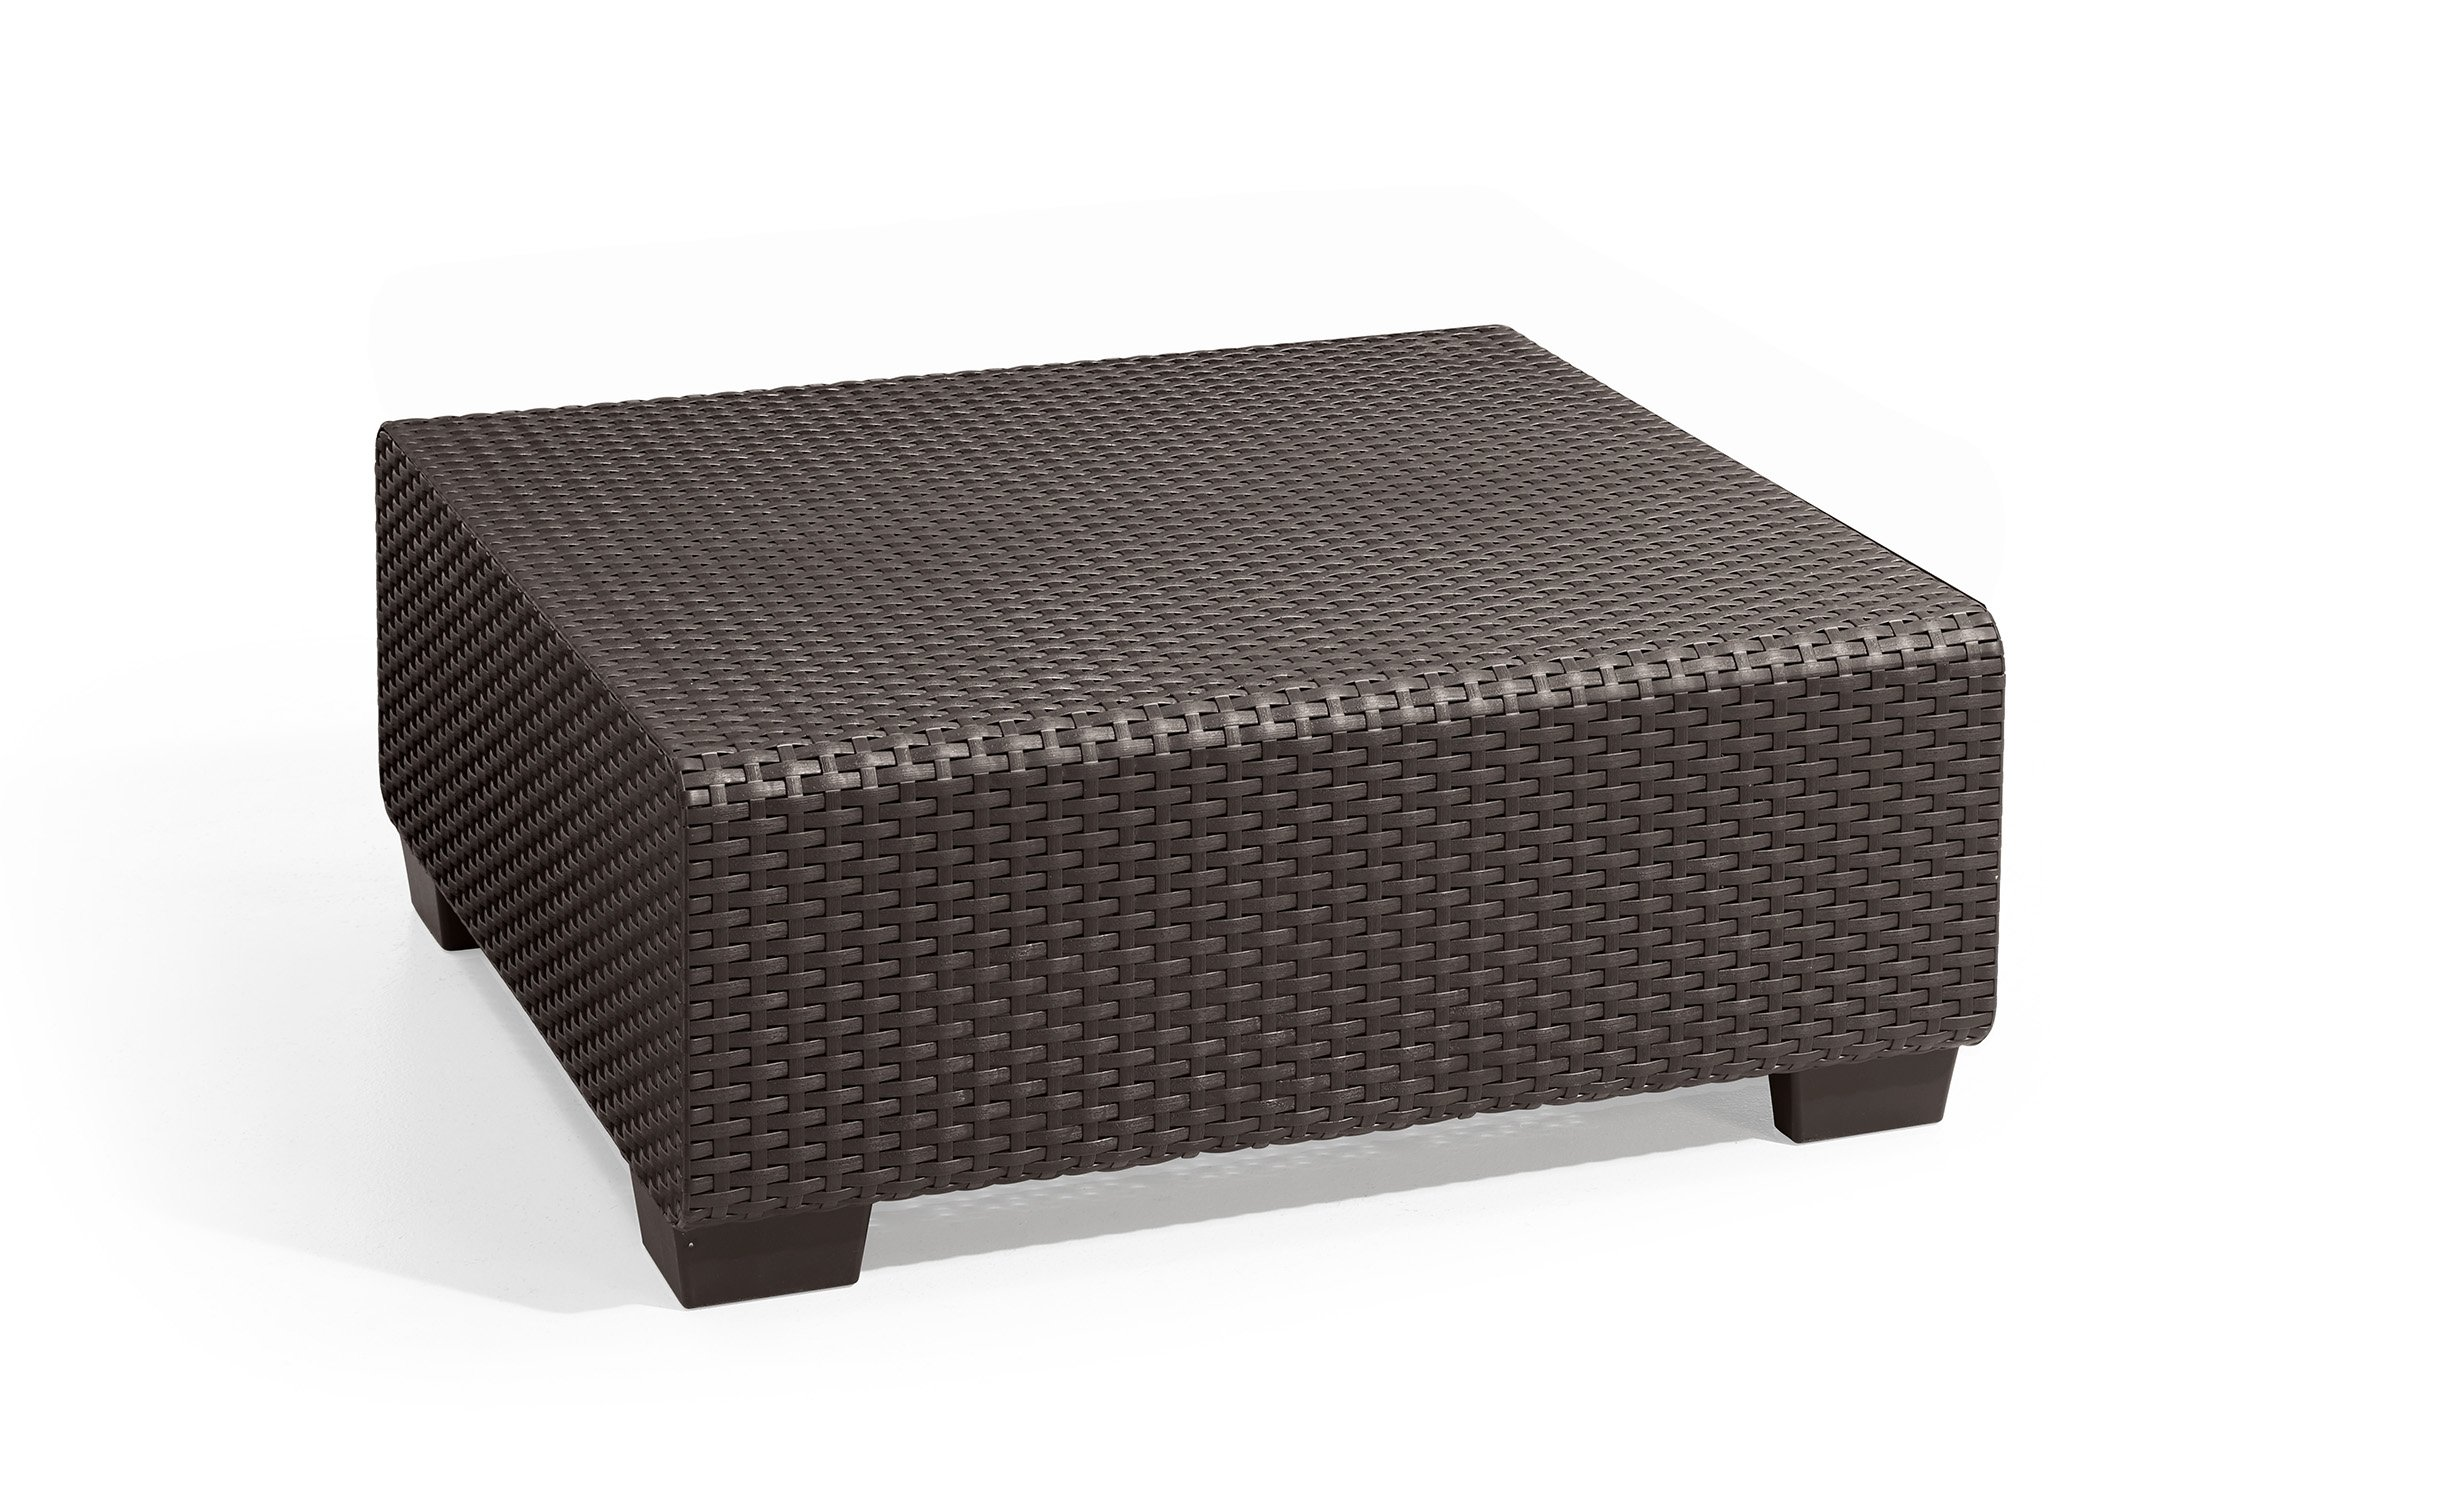 Keter Sapporo Modular Coffee Table Modern All Weather Outdoor Patio Garden Backyard Furniture, Rich Brown by Keter